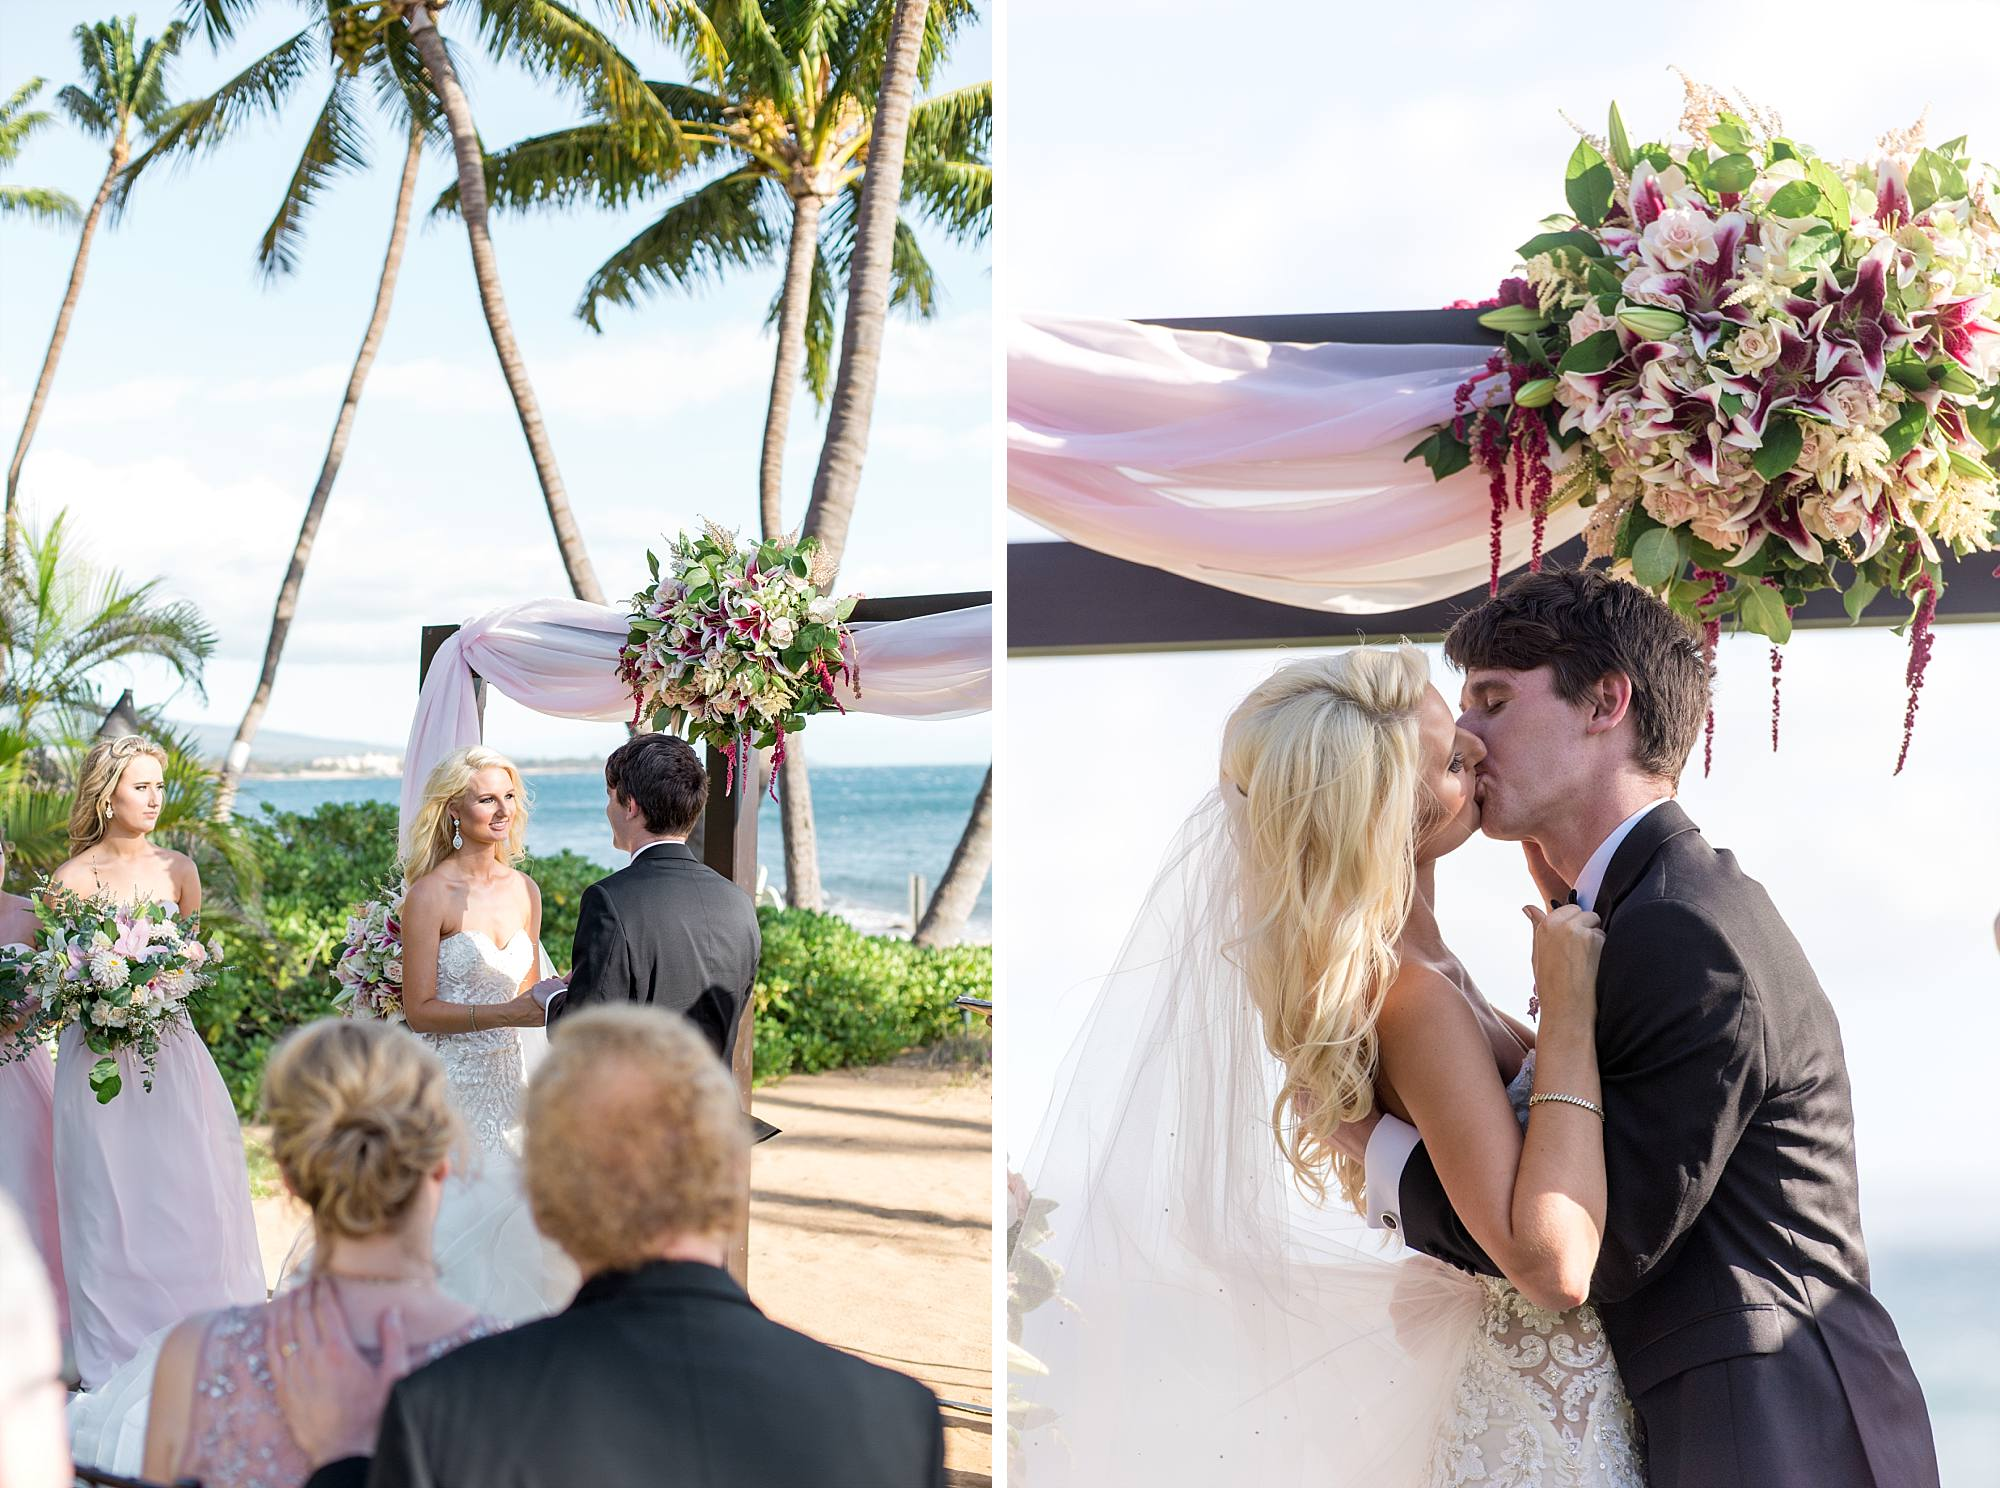 bride and groom share their first kiss as husband and wife! Beautiful Maui location